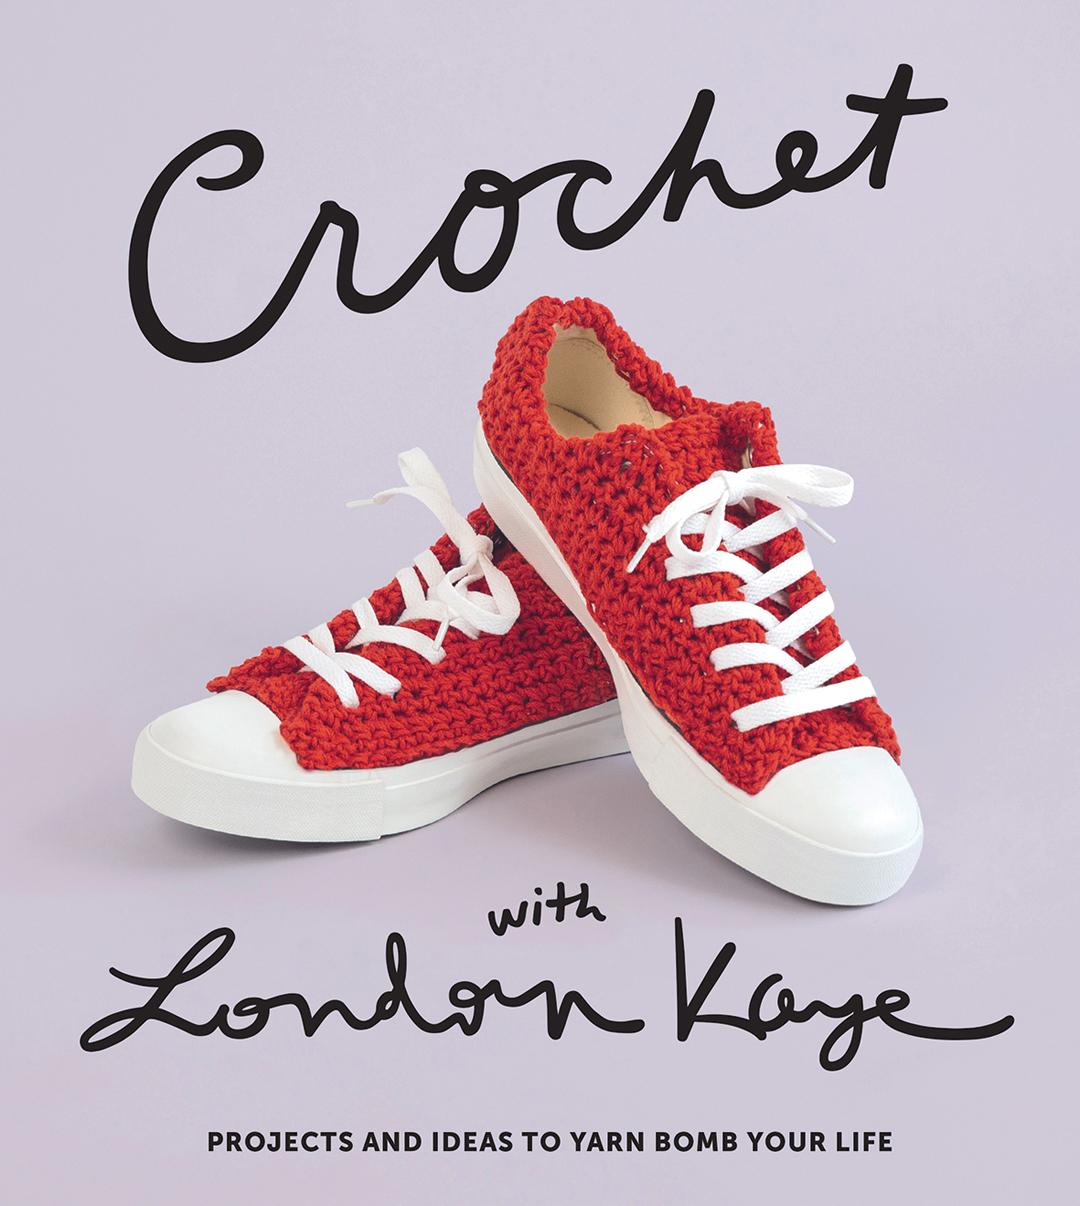 Crochet with London Kaye book